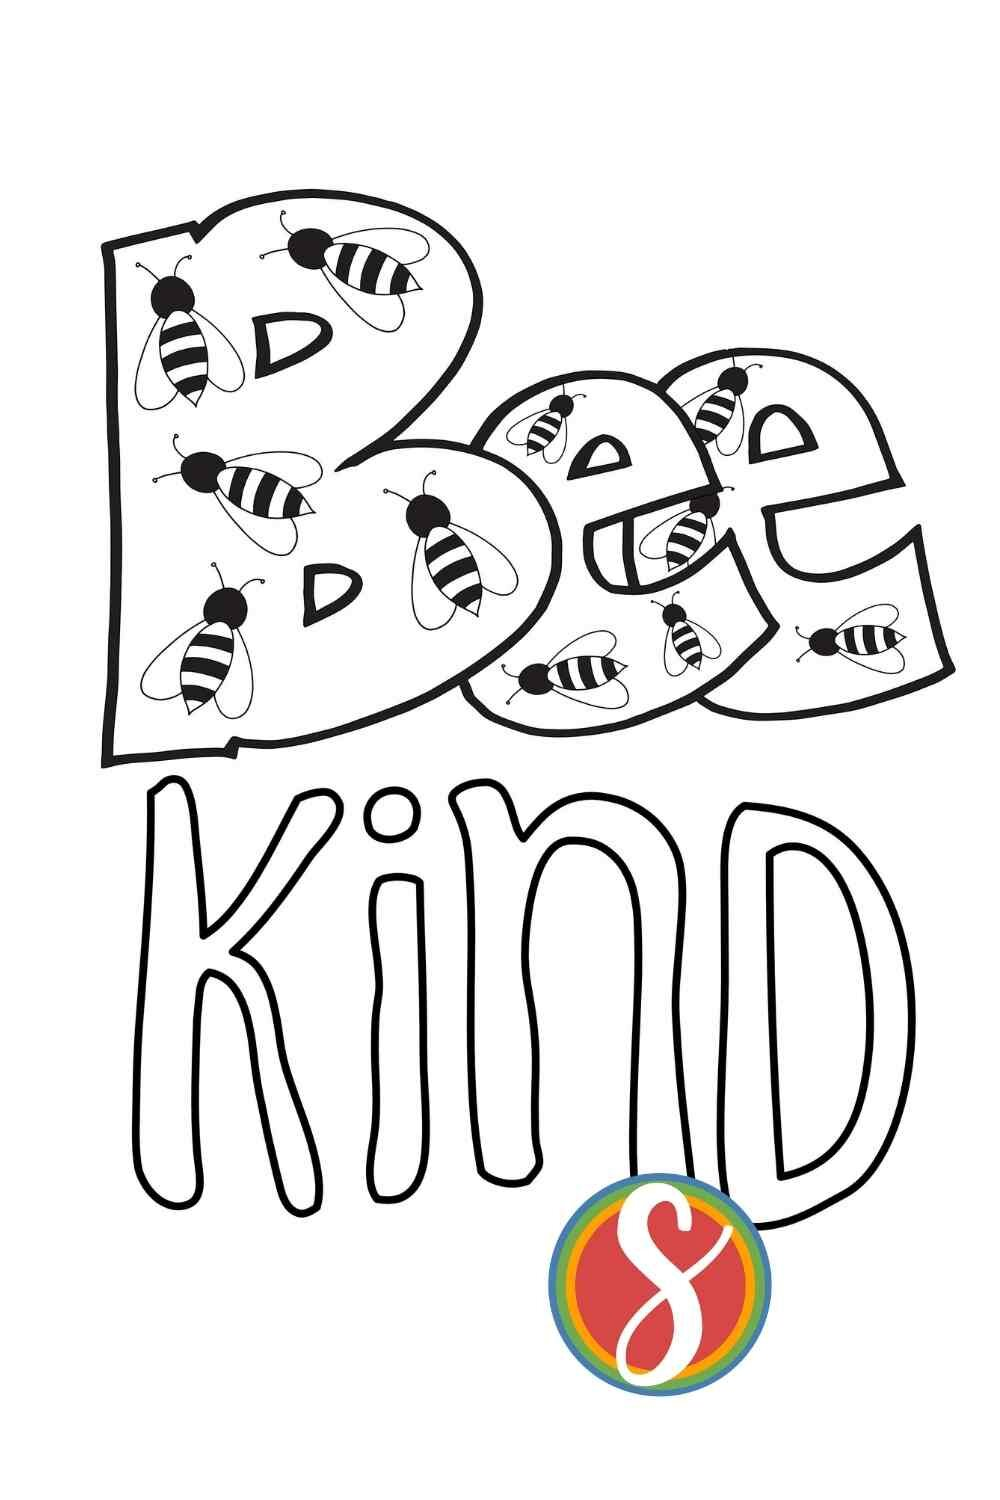 Bee kind - a free printable bee coloring sheet from Stevie Doodles